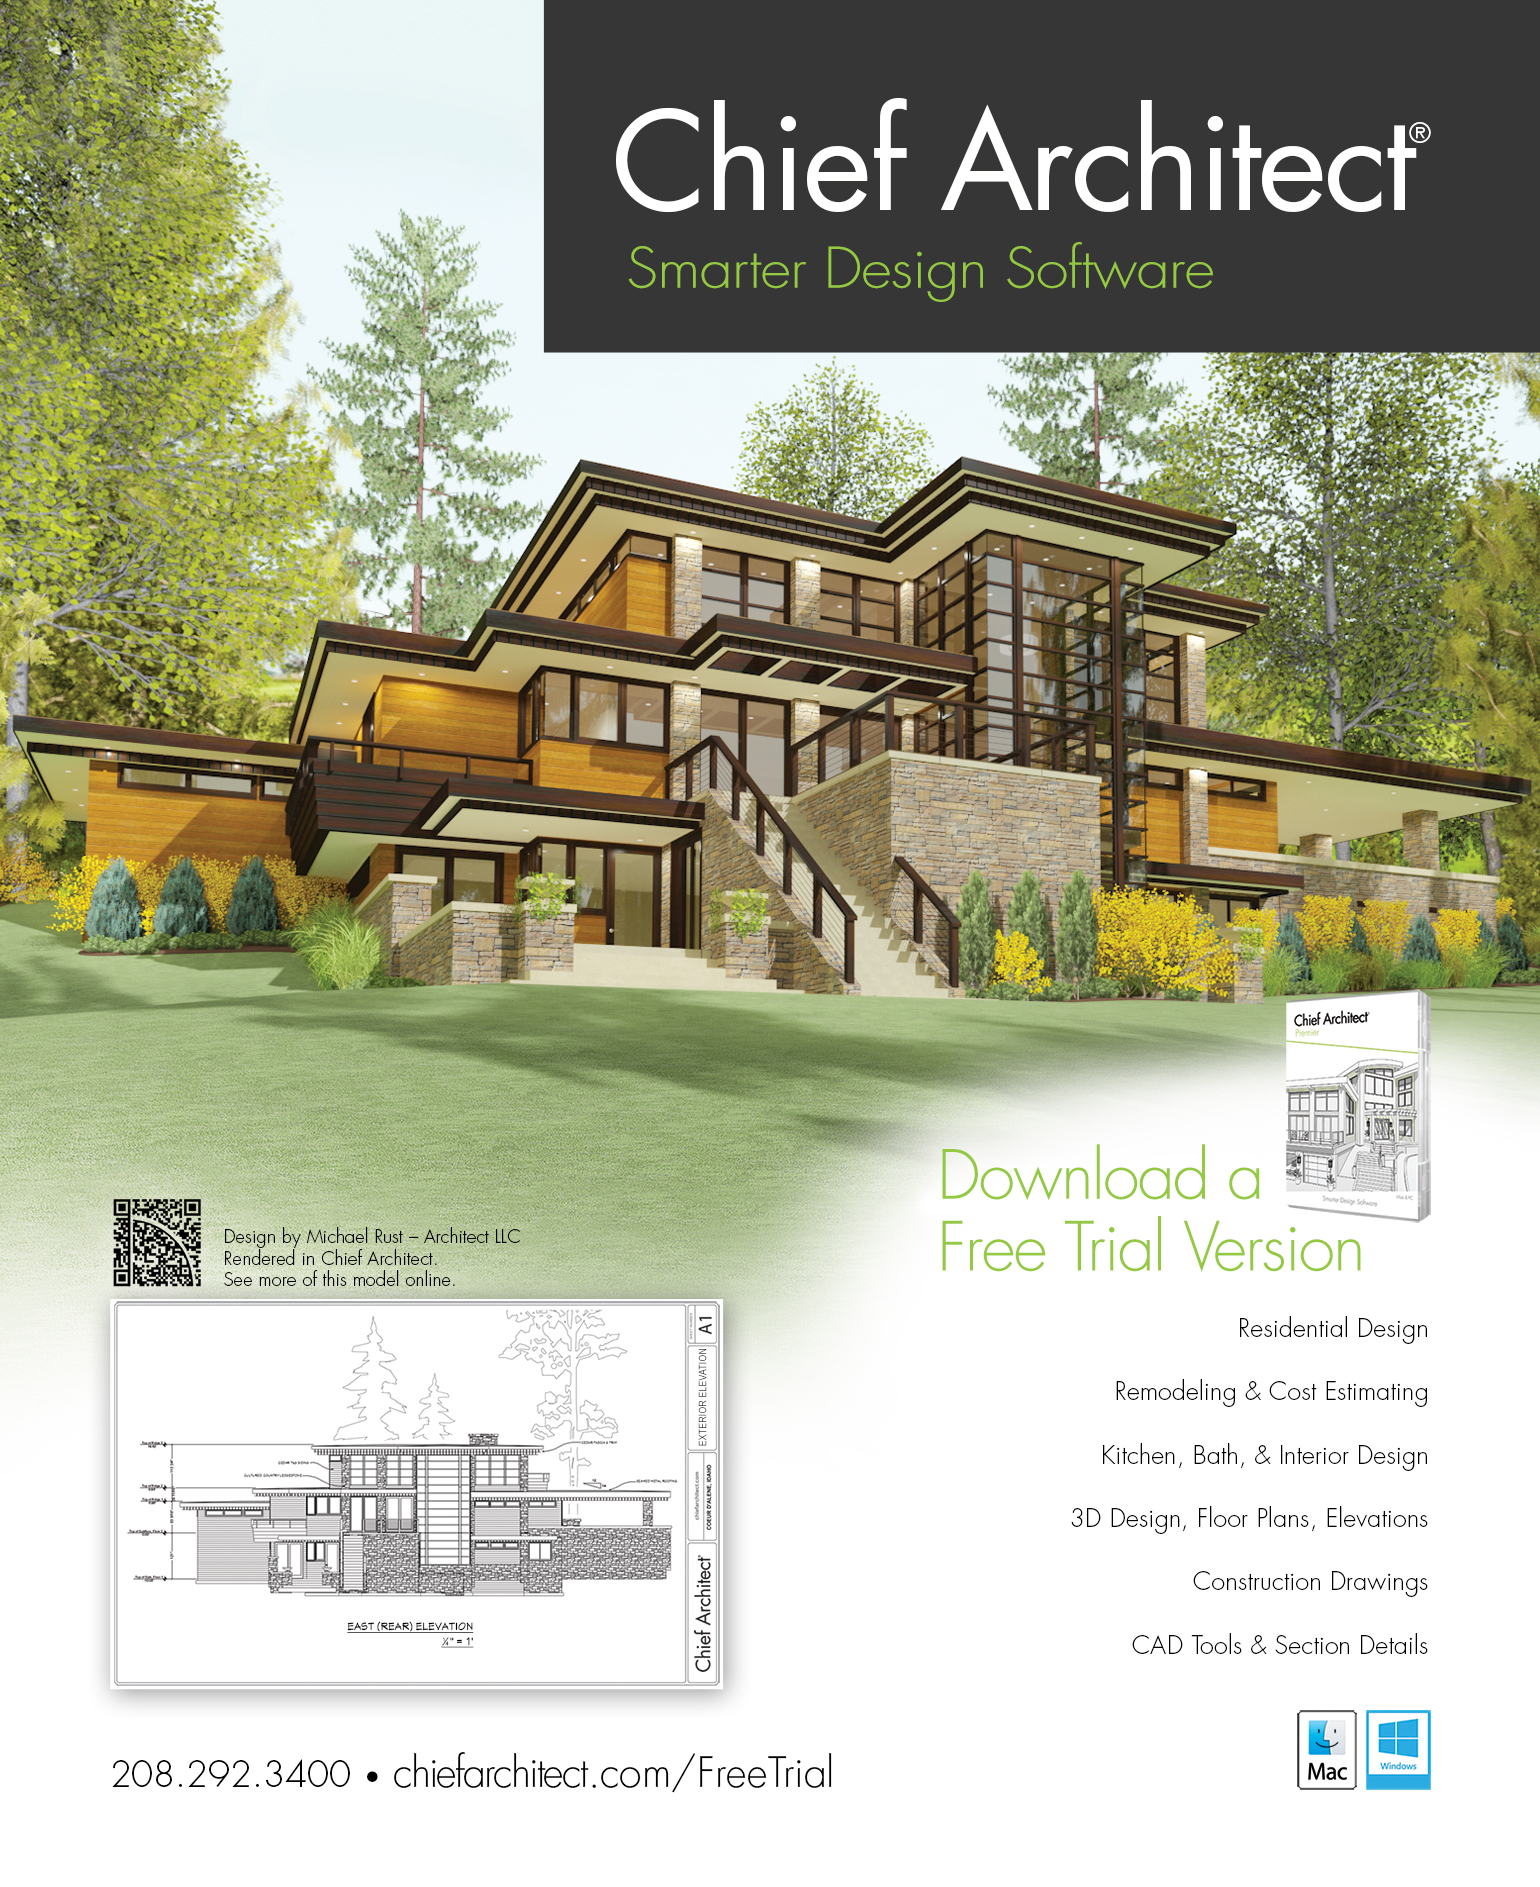 Home Design Ideas Architecture: Chief Architect Home Design Software Ad